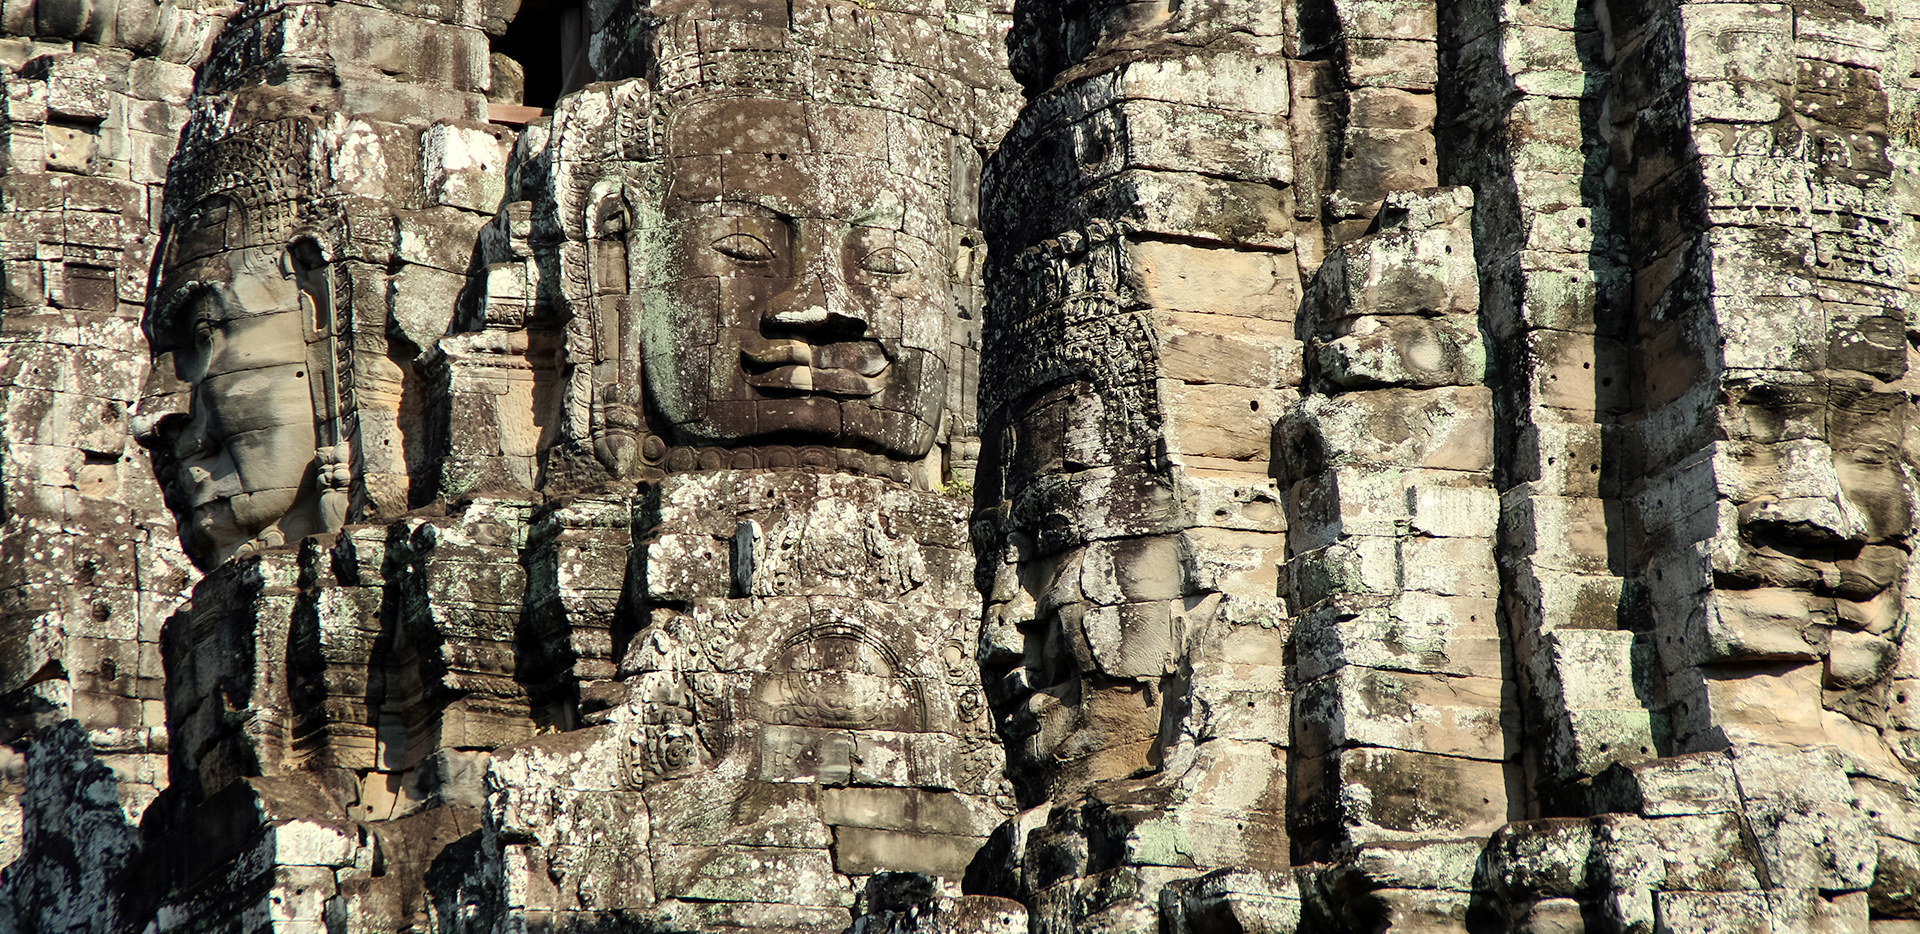 Angkor Wat Rock Faces